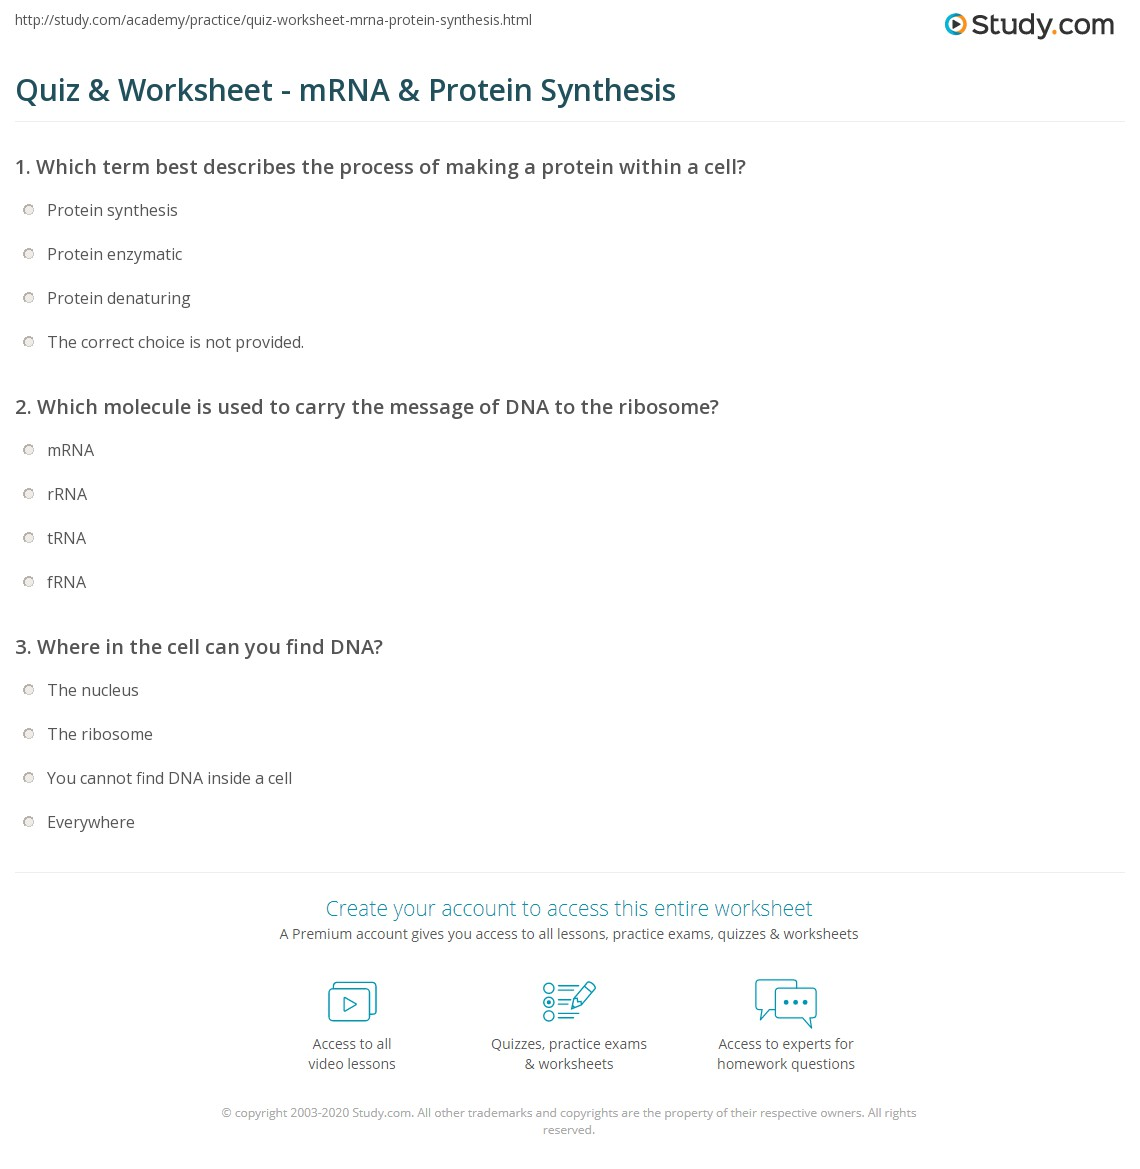 Quiz & Worksheet - mRNA & Protein Synthesis | Study.com